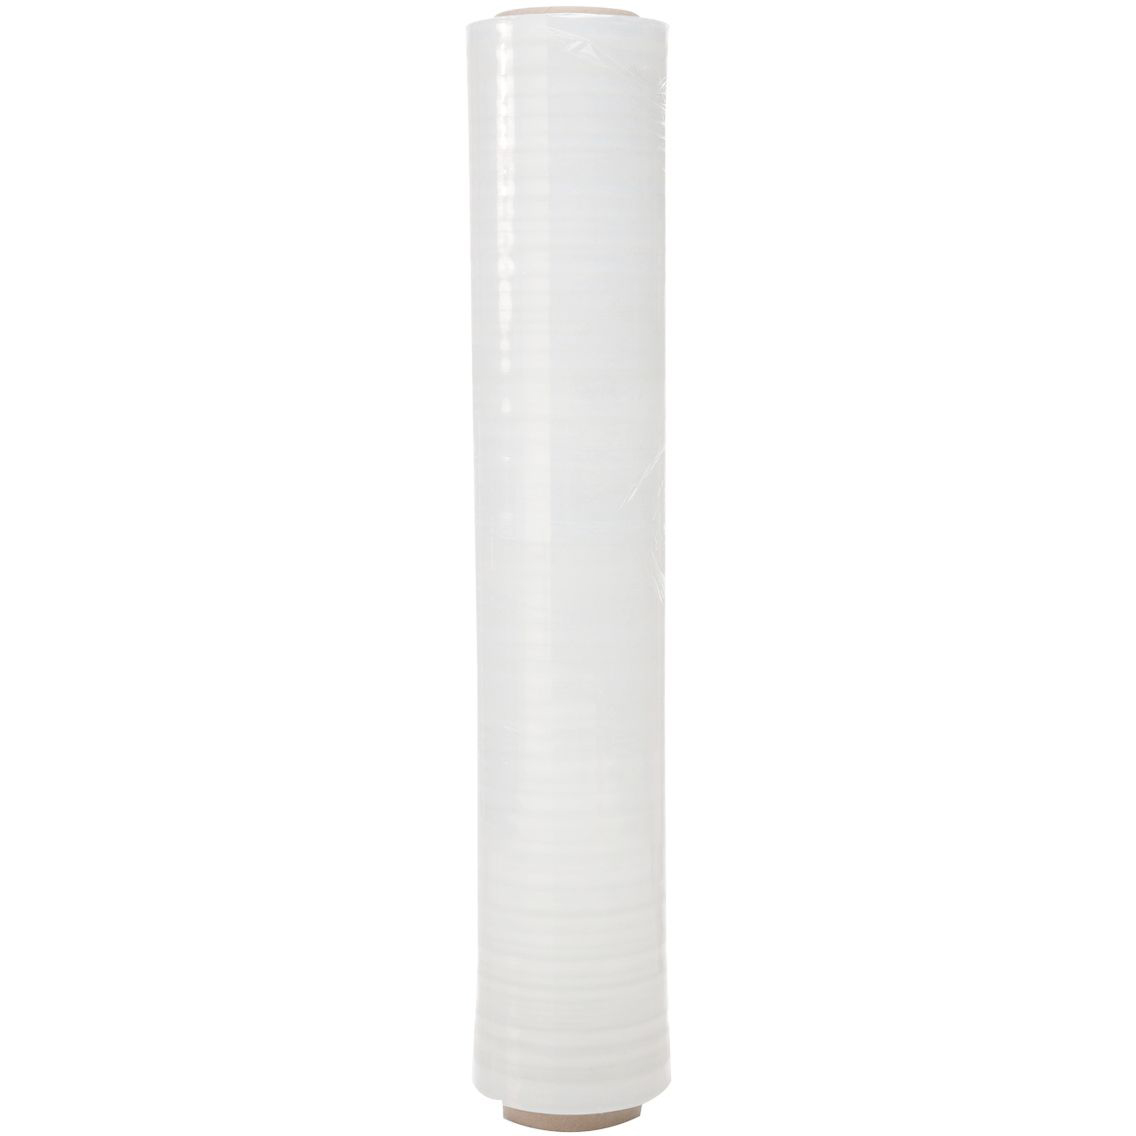 Hotpack Plastic Stretch Wrap Film 20-micron - 2.5kg (box/6pcs)